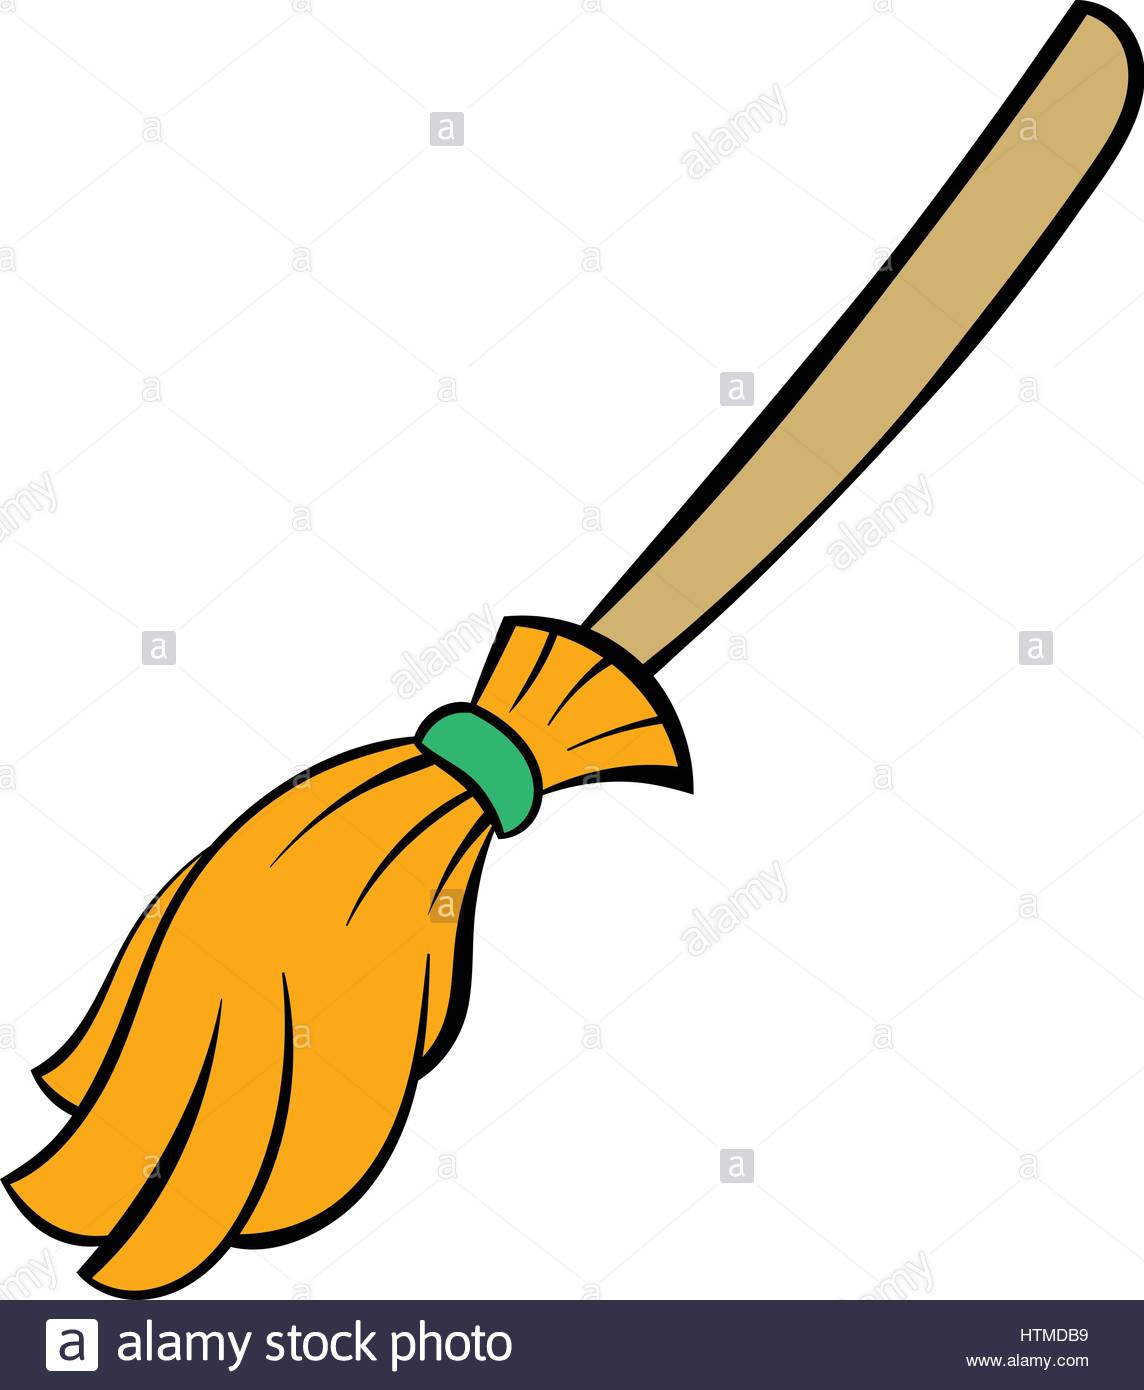 1144x1390 Halloween Witches Broomstick, Witches Broom Illustration Vector